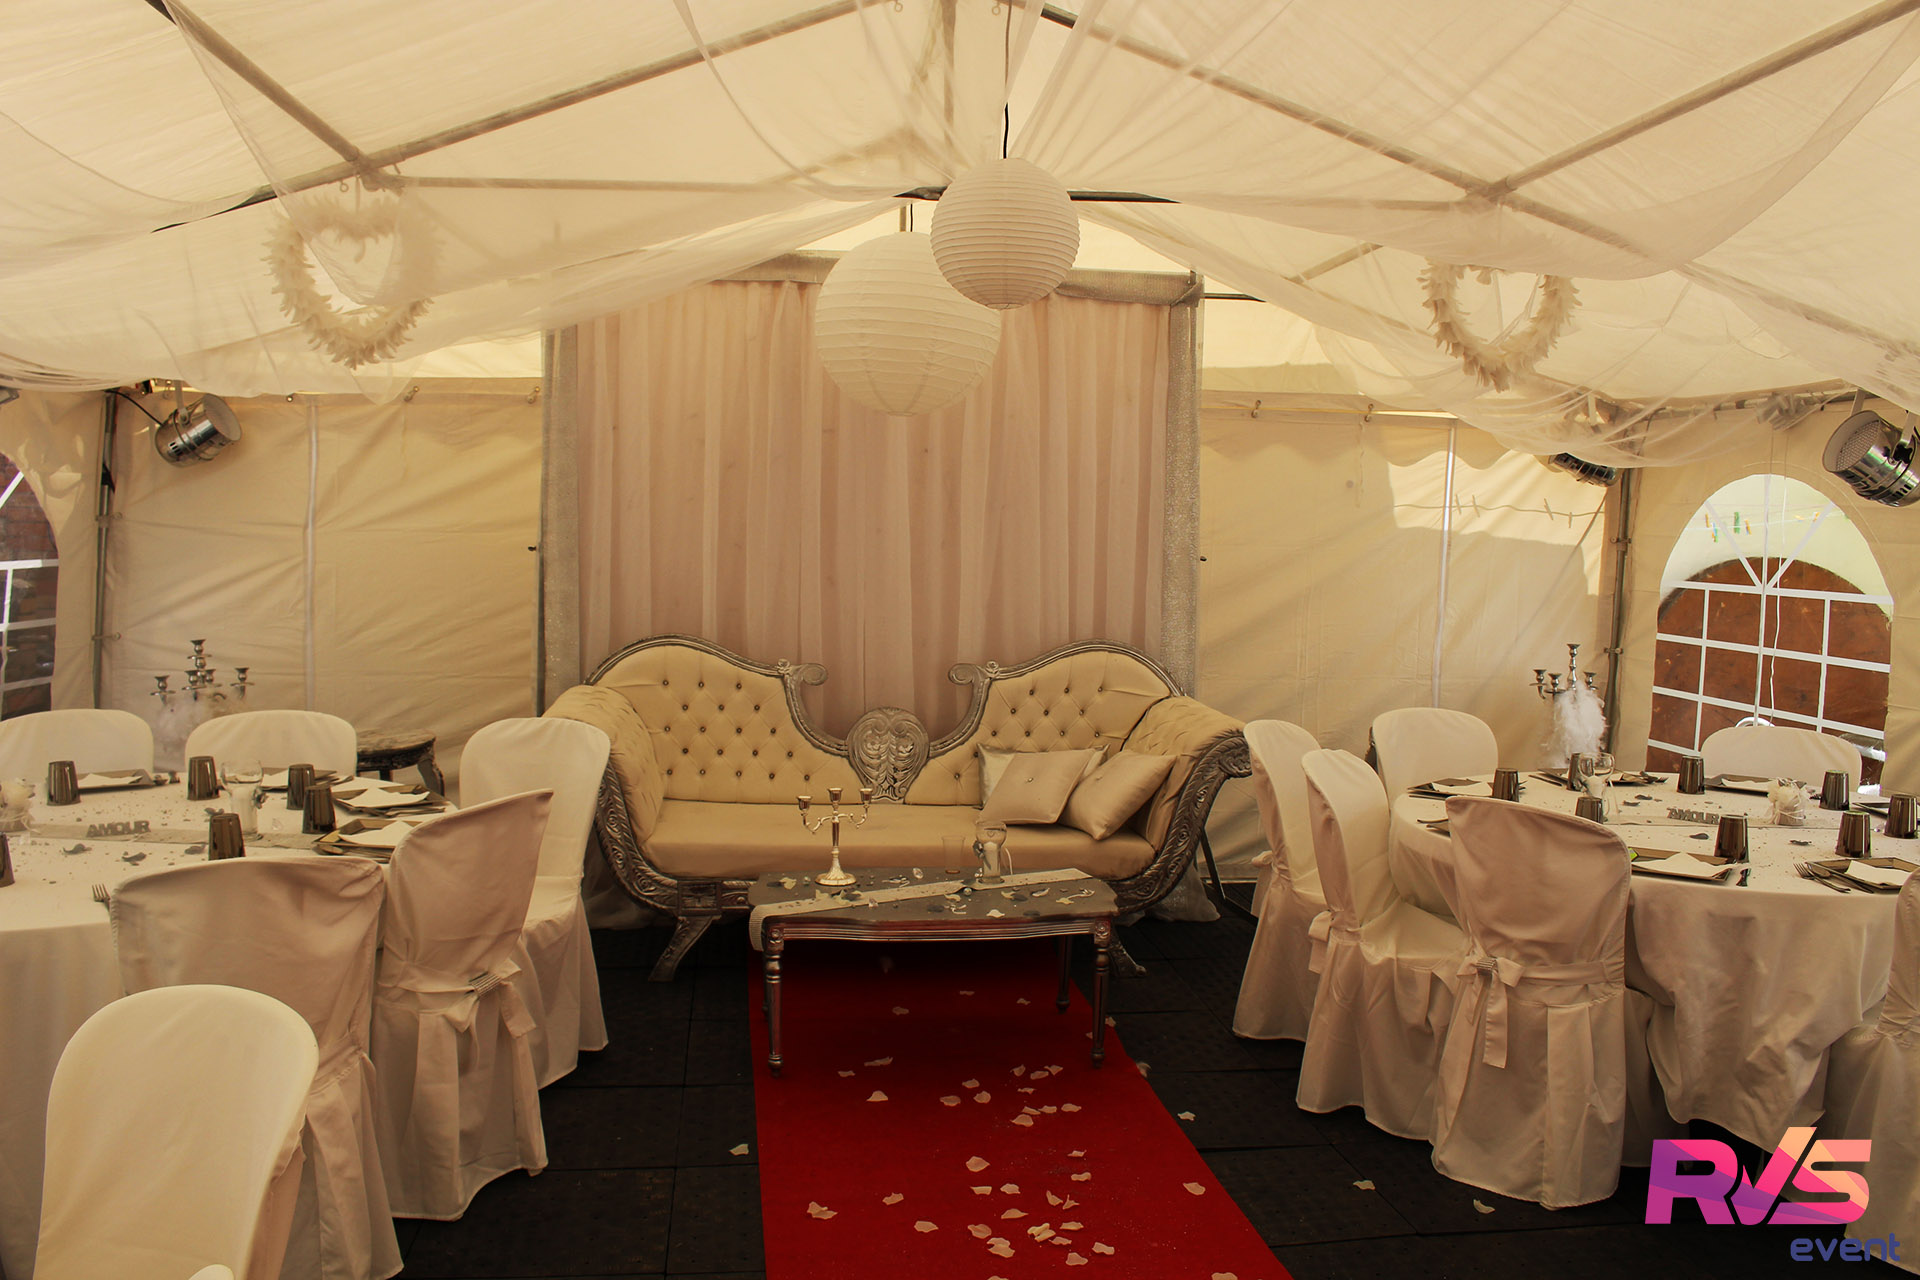 dcoration intrieure mariage - Mariage Barnum